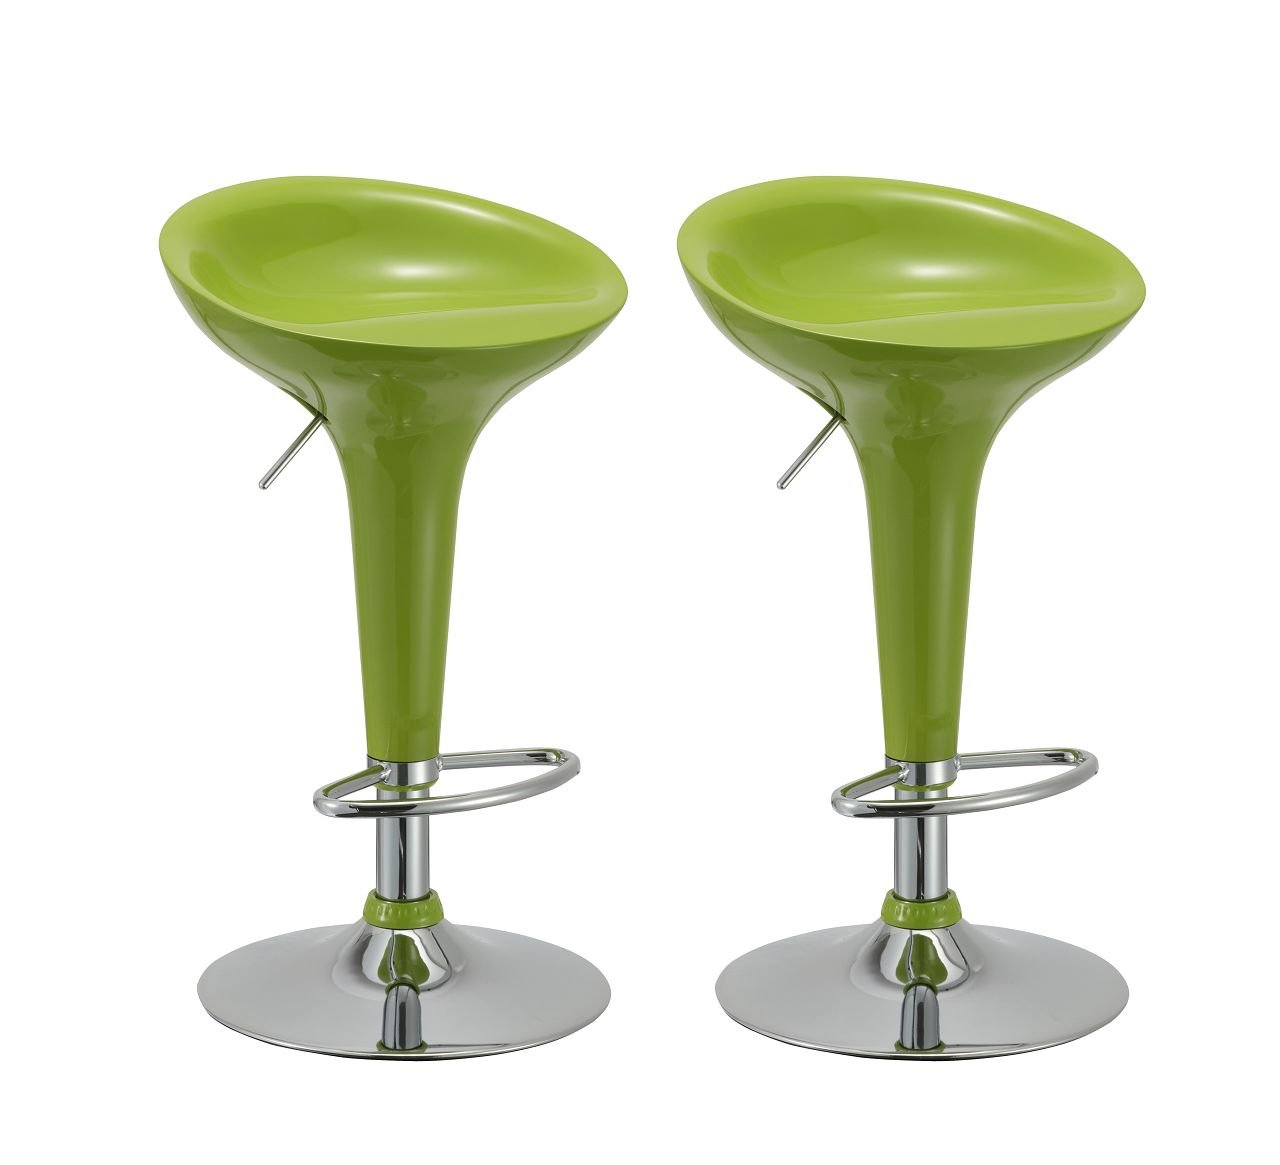 Amazon.com: Bar Stool Set of 2 Gloss Adjustable Swivel Bar Chair ...